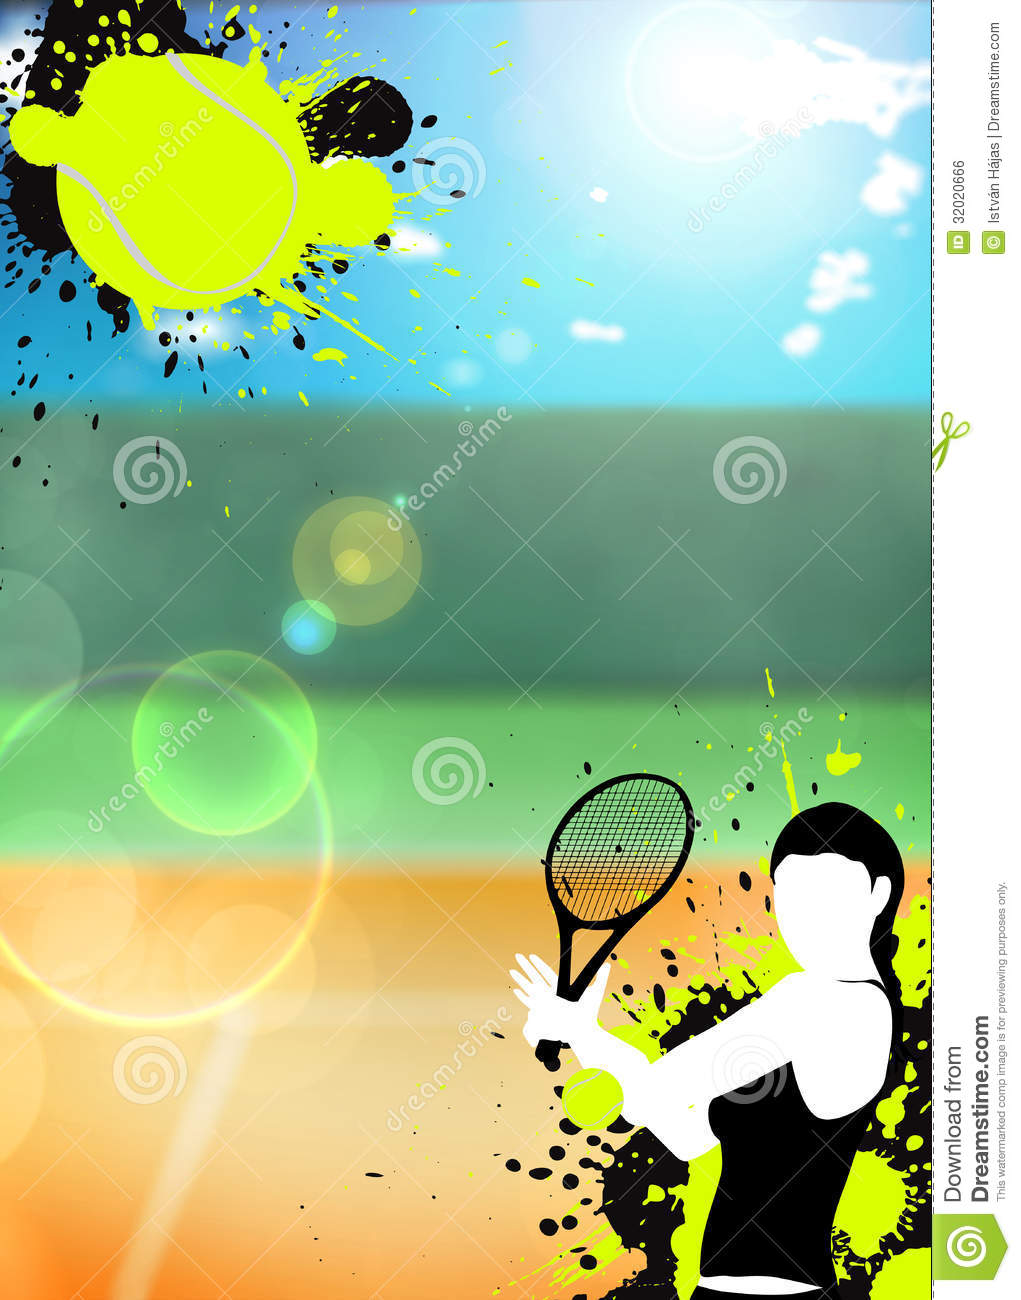 Tennis Sport Background Royalty Free Stock Image - Image: 32020666